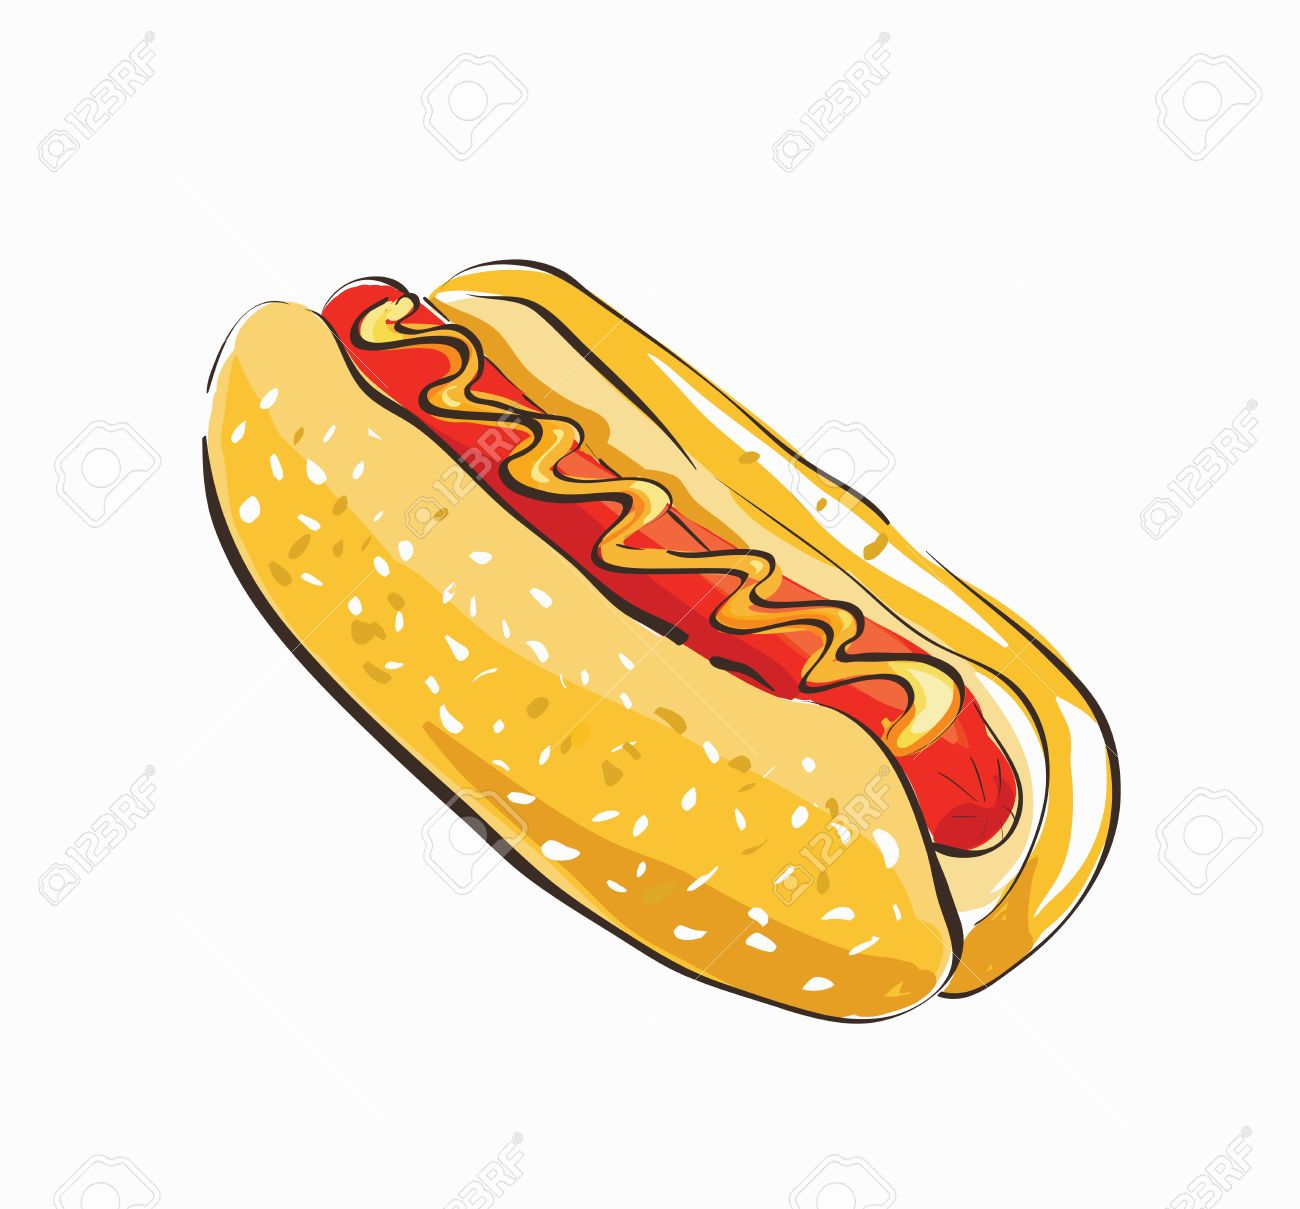 Hot Dog Cartoon. Clip-art, Illustration. Royalty Free Cliparts ...